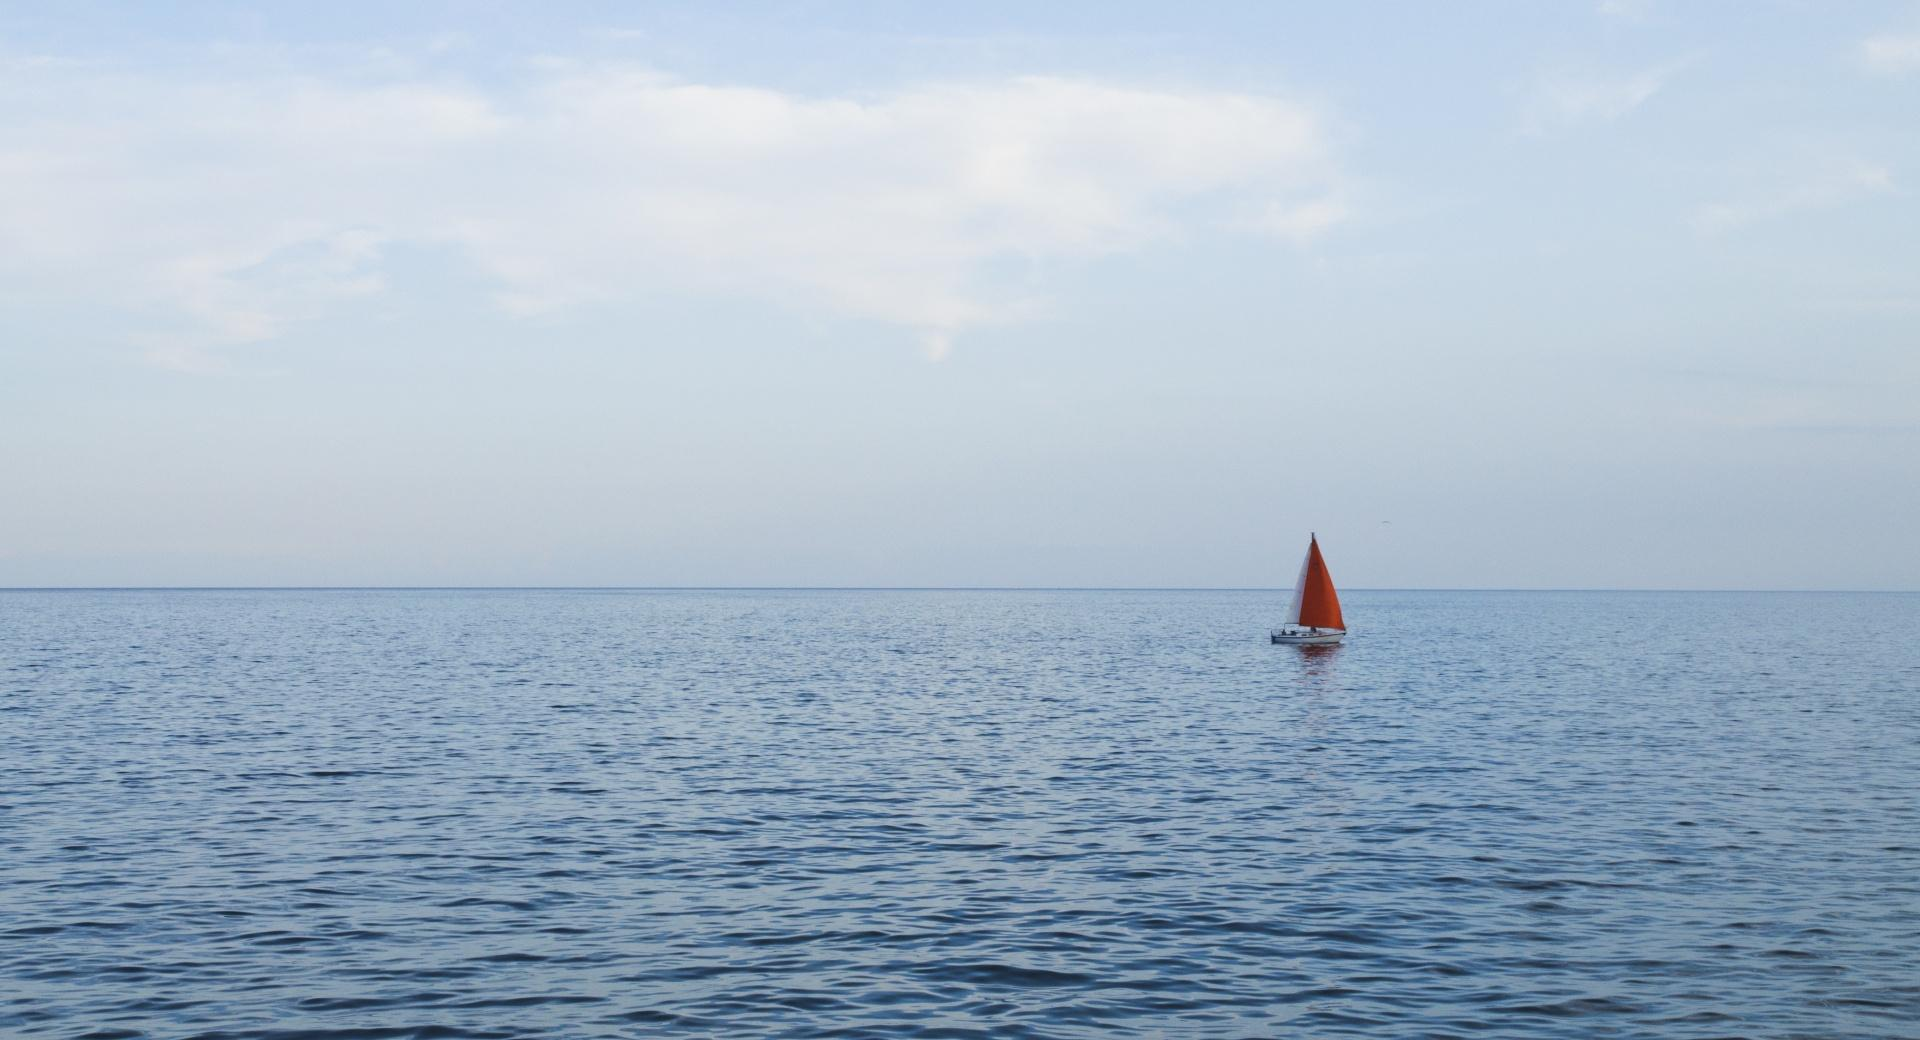 Solo Sail Boat wallpapers HD quality